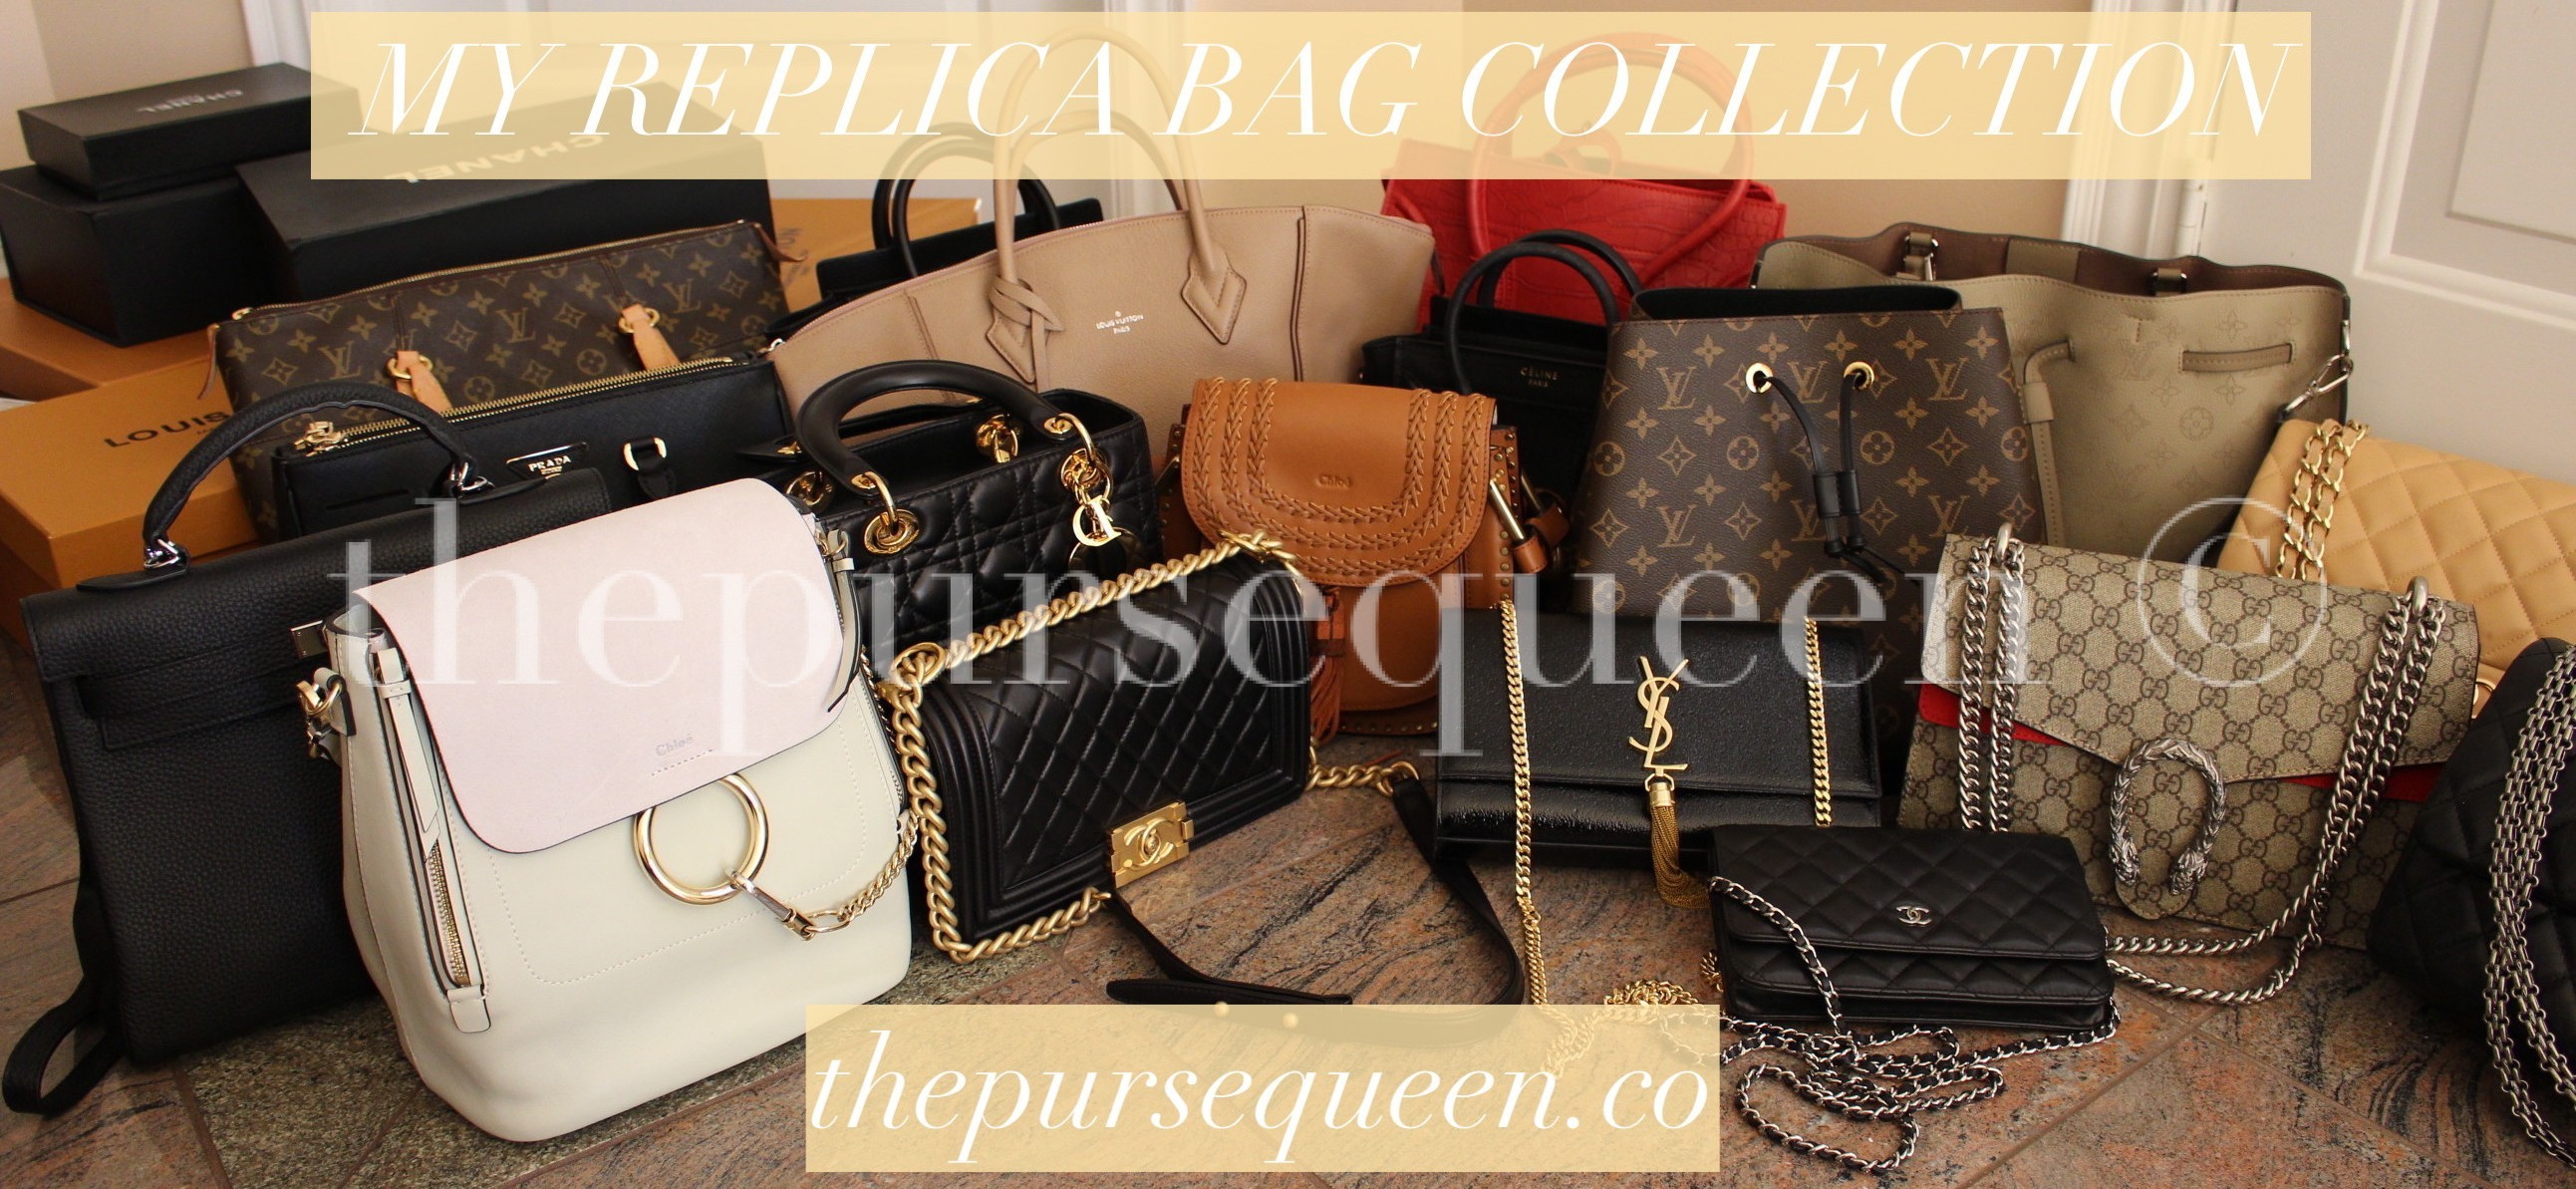 Replica Authenticamp; Recommended List Handbag Sellers 0wmNn8v